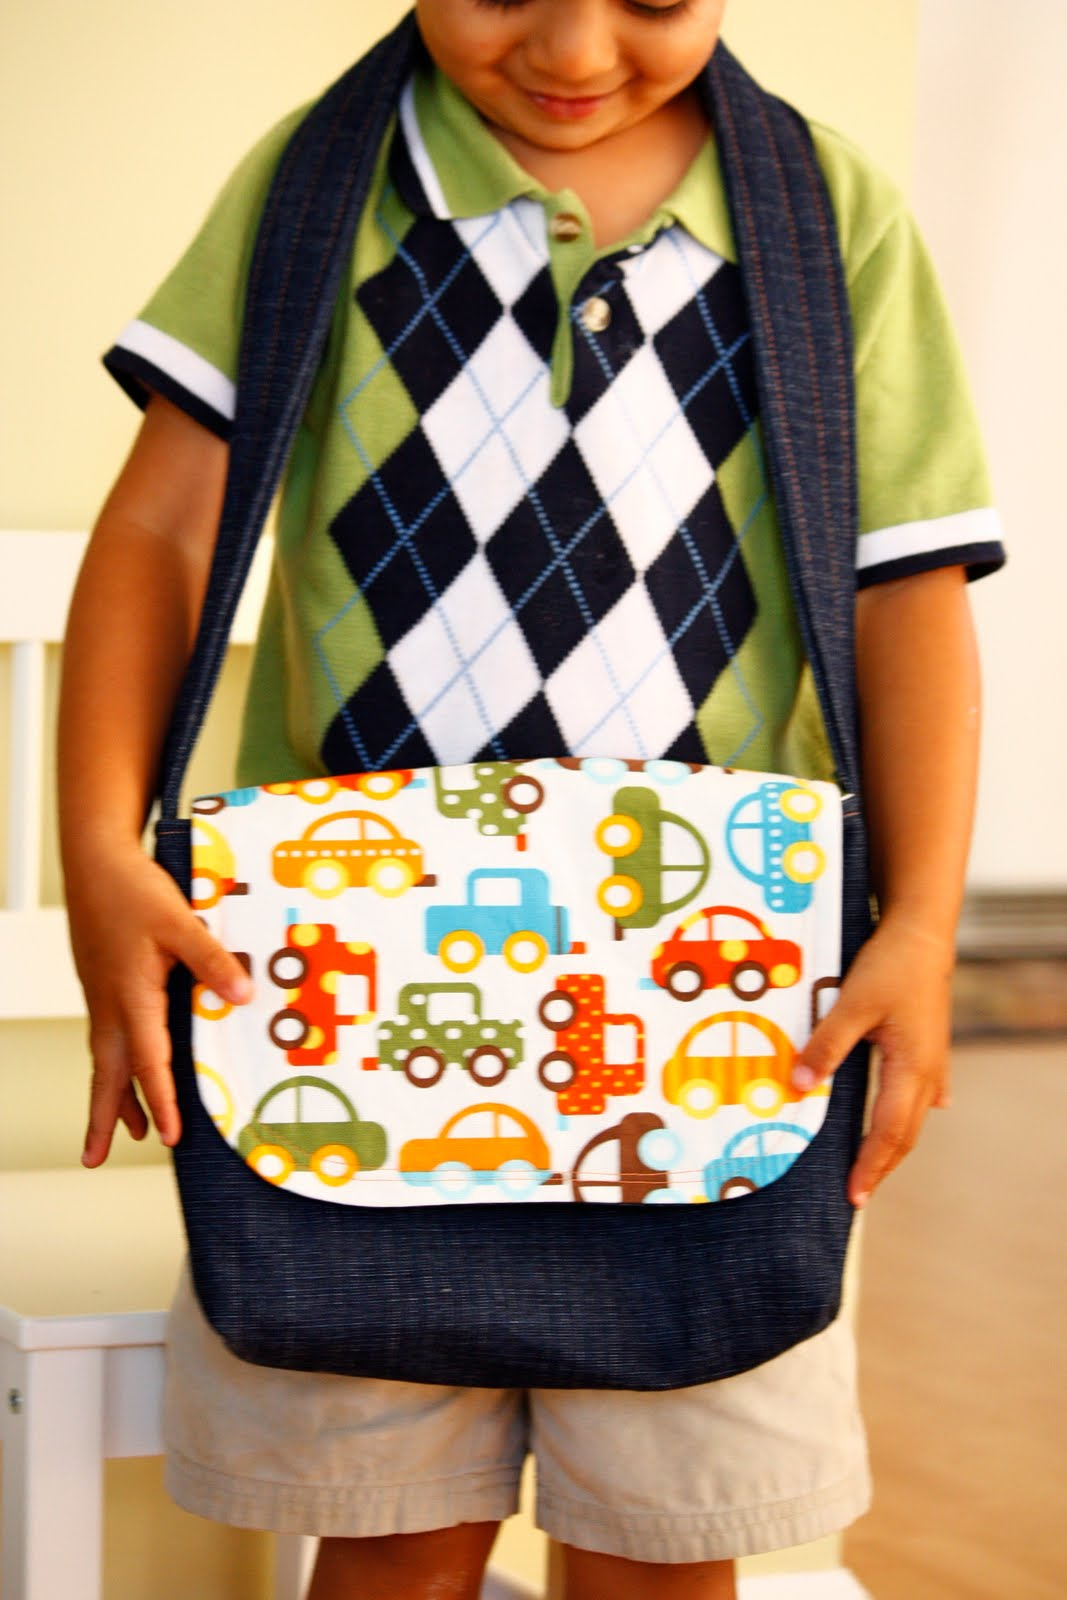 Purchase your next Kids messenger bag from Zazzle. Choose one of our great designs and order your messenger bag today!